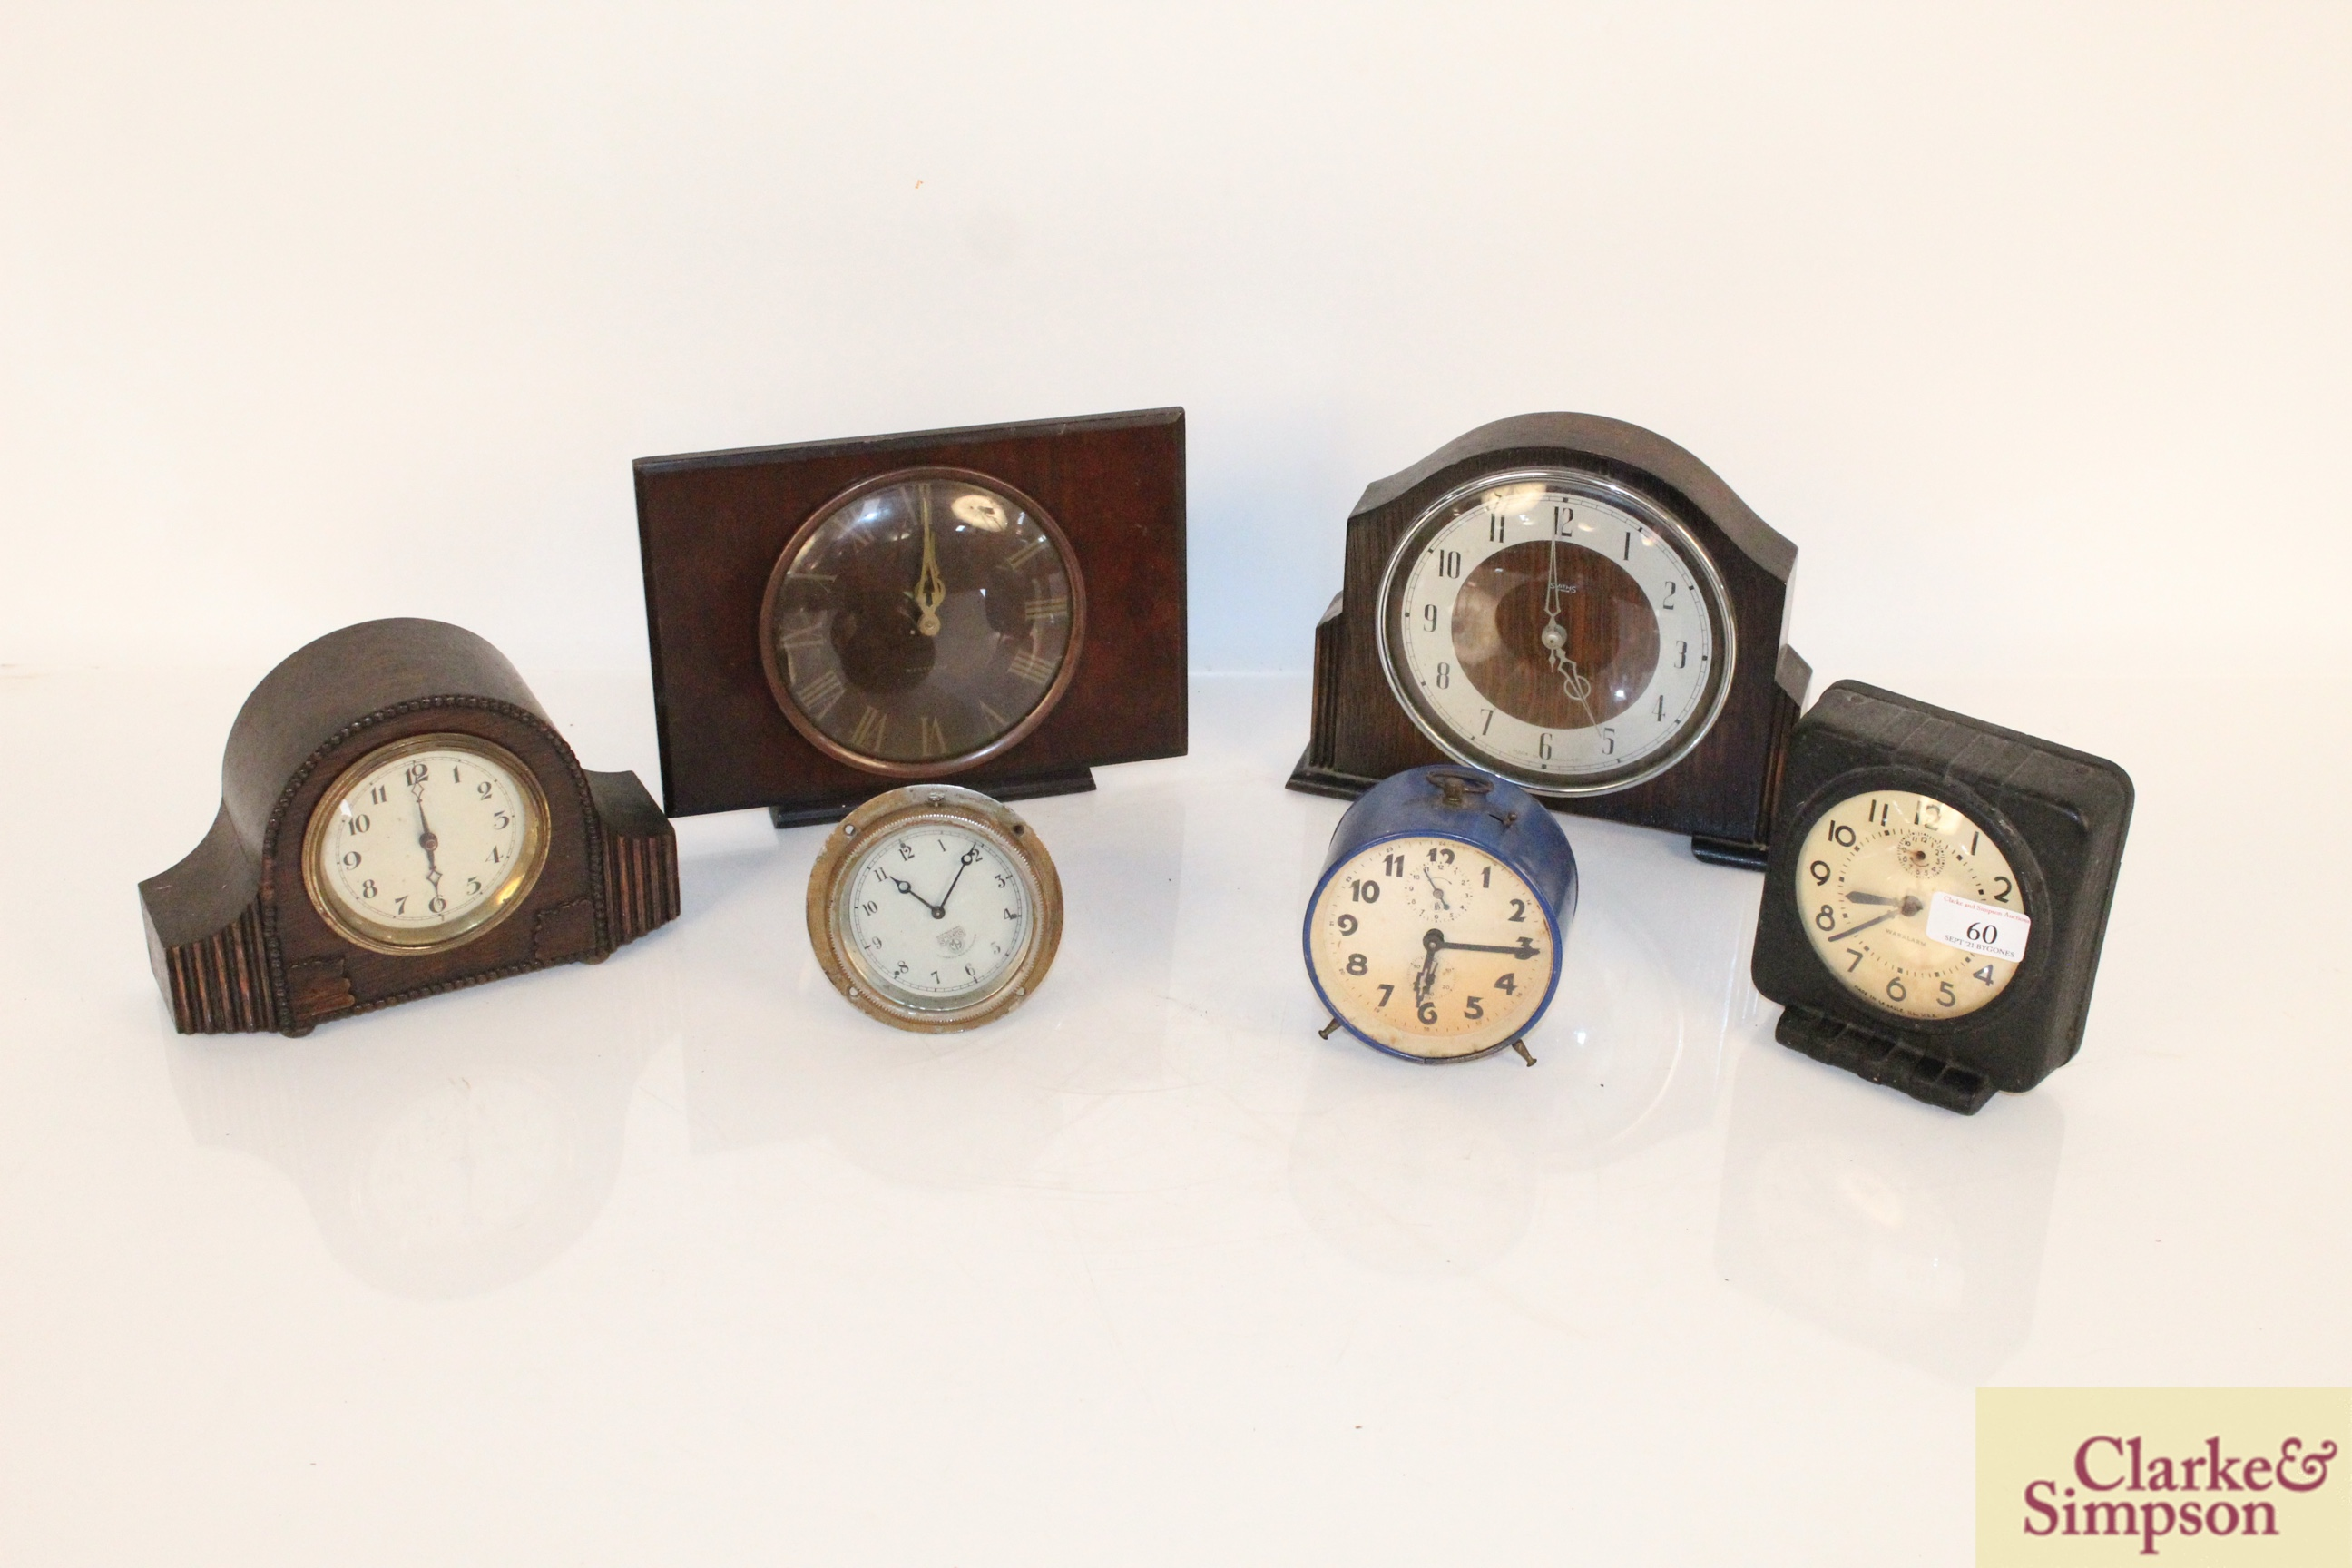 A collection of vintage clocks including a war ala